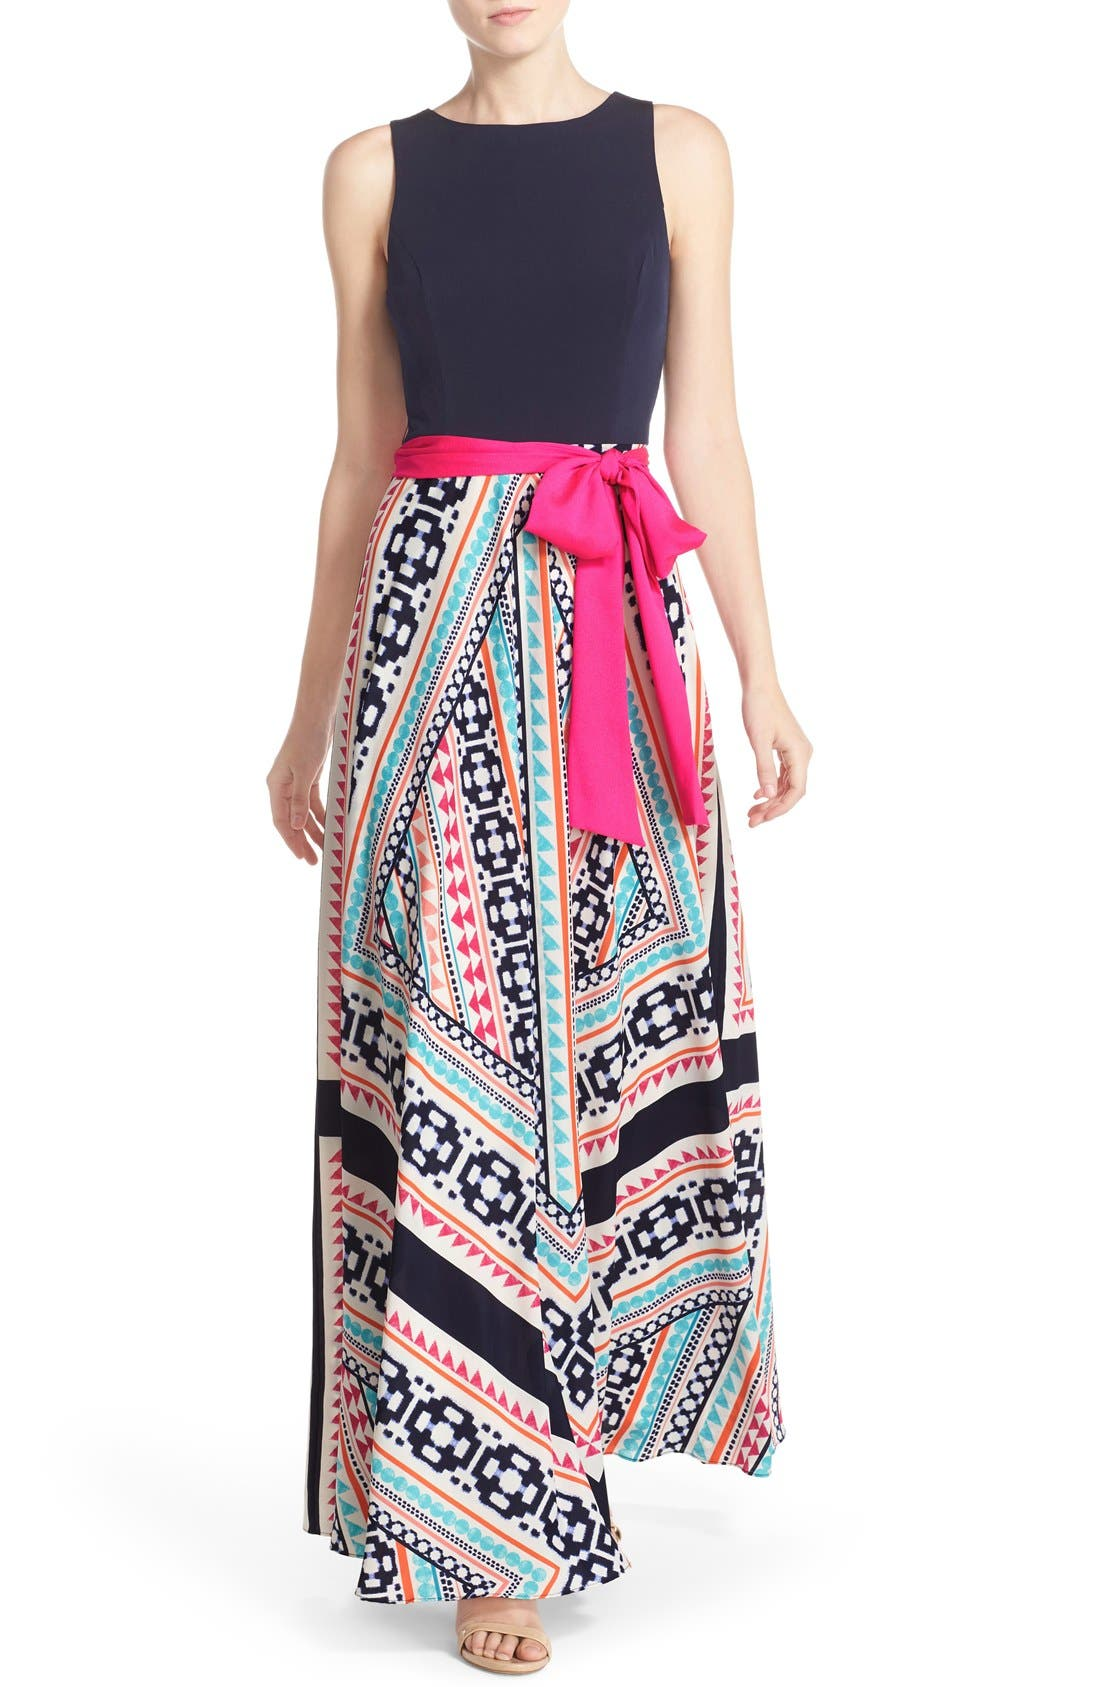 Alternate Image 1 Selected - Eliza J Jersey & Print Crêpe de Chine Maxi Dress (Regular & Petite)